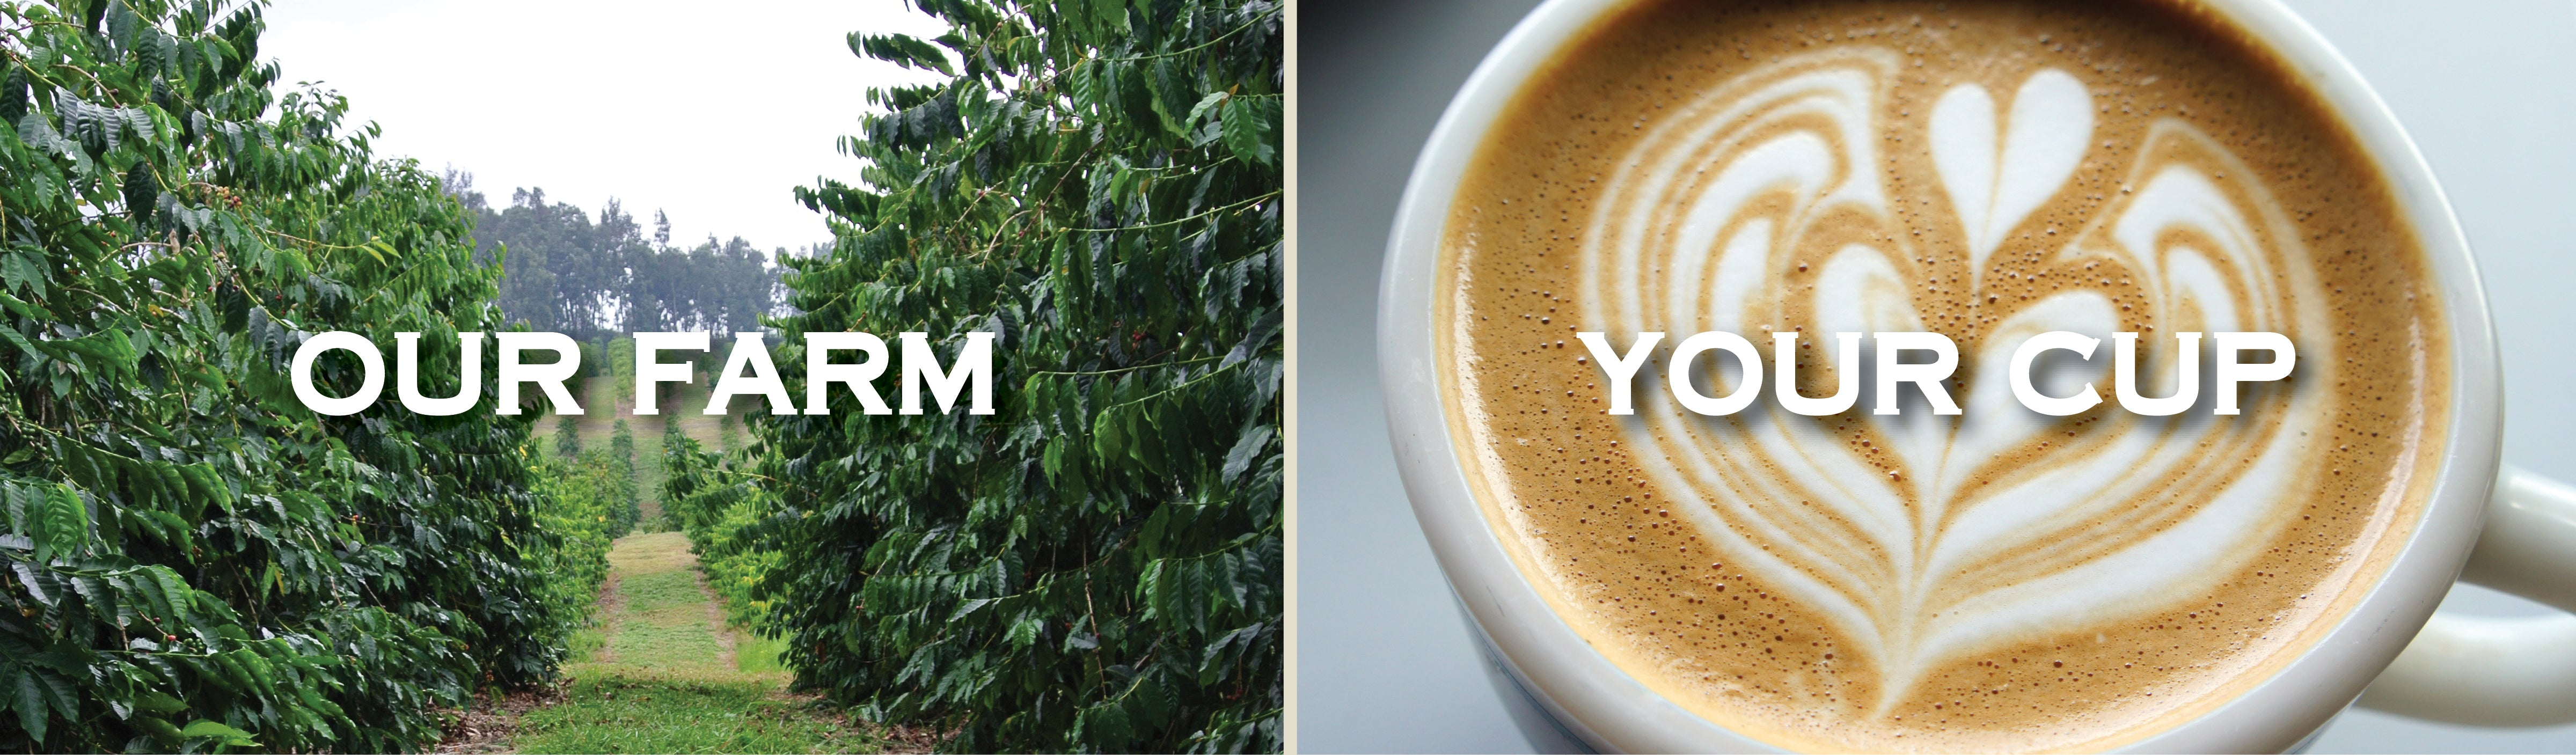 """A Kona Coffee Farm next to a cup of Freshly Poured Kona Coffee, text """"Our Farm Your Cup"""""""